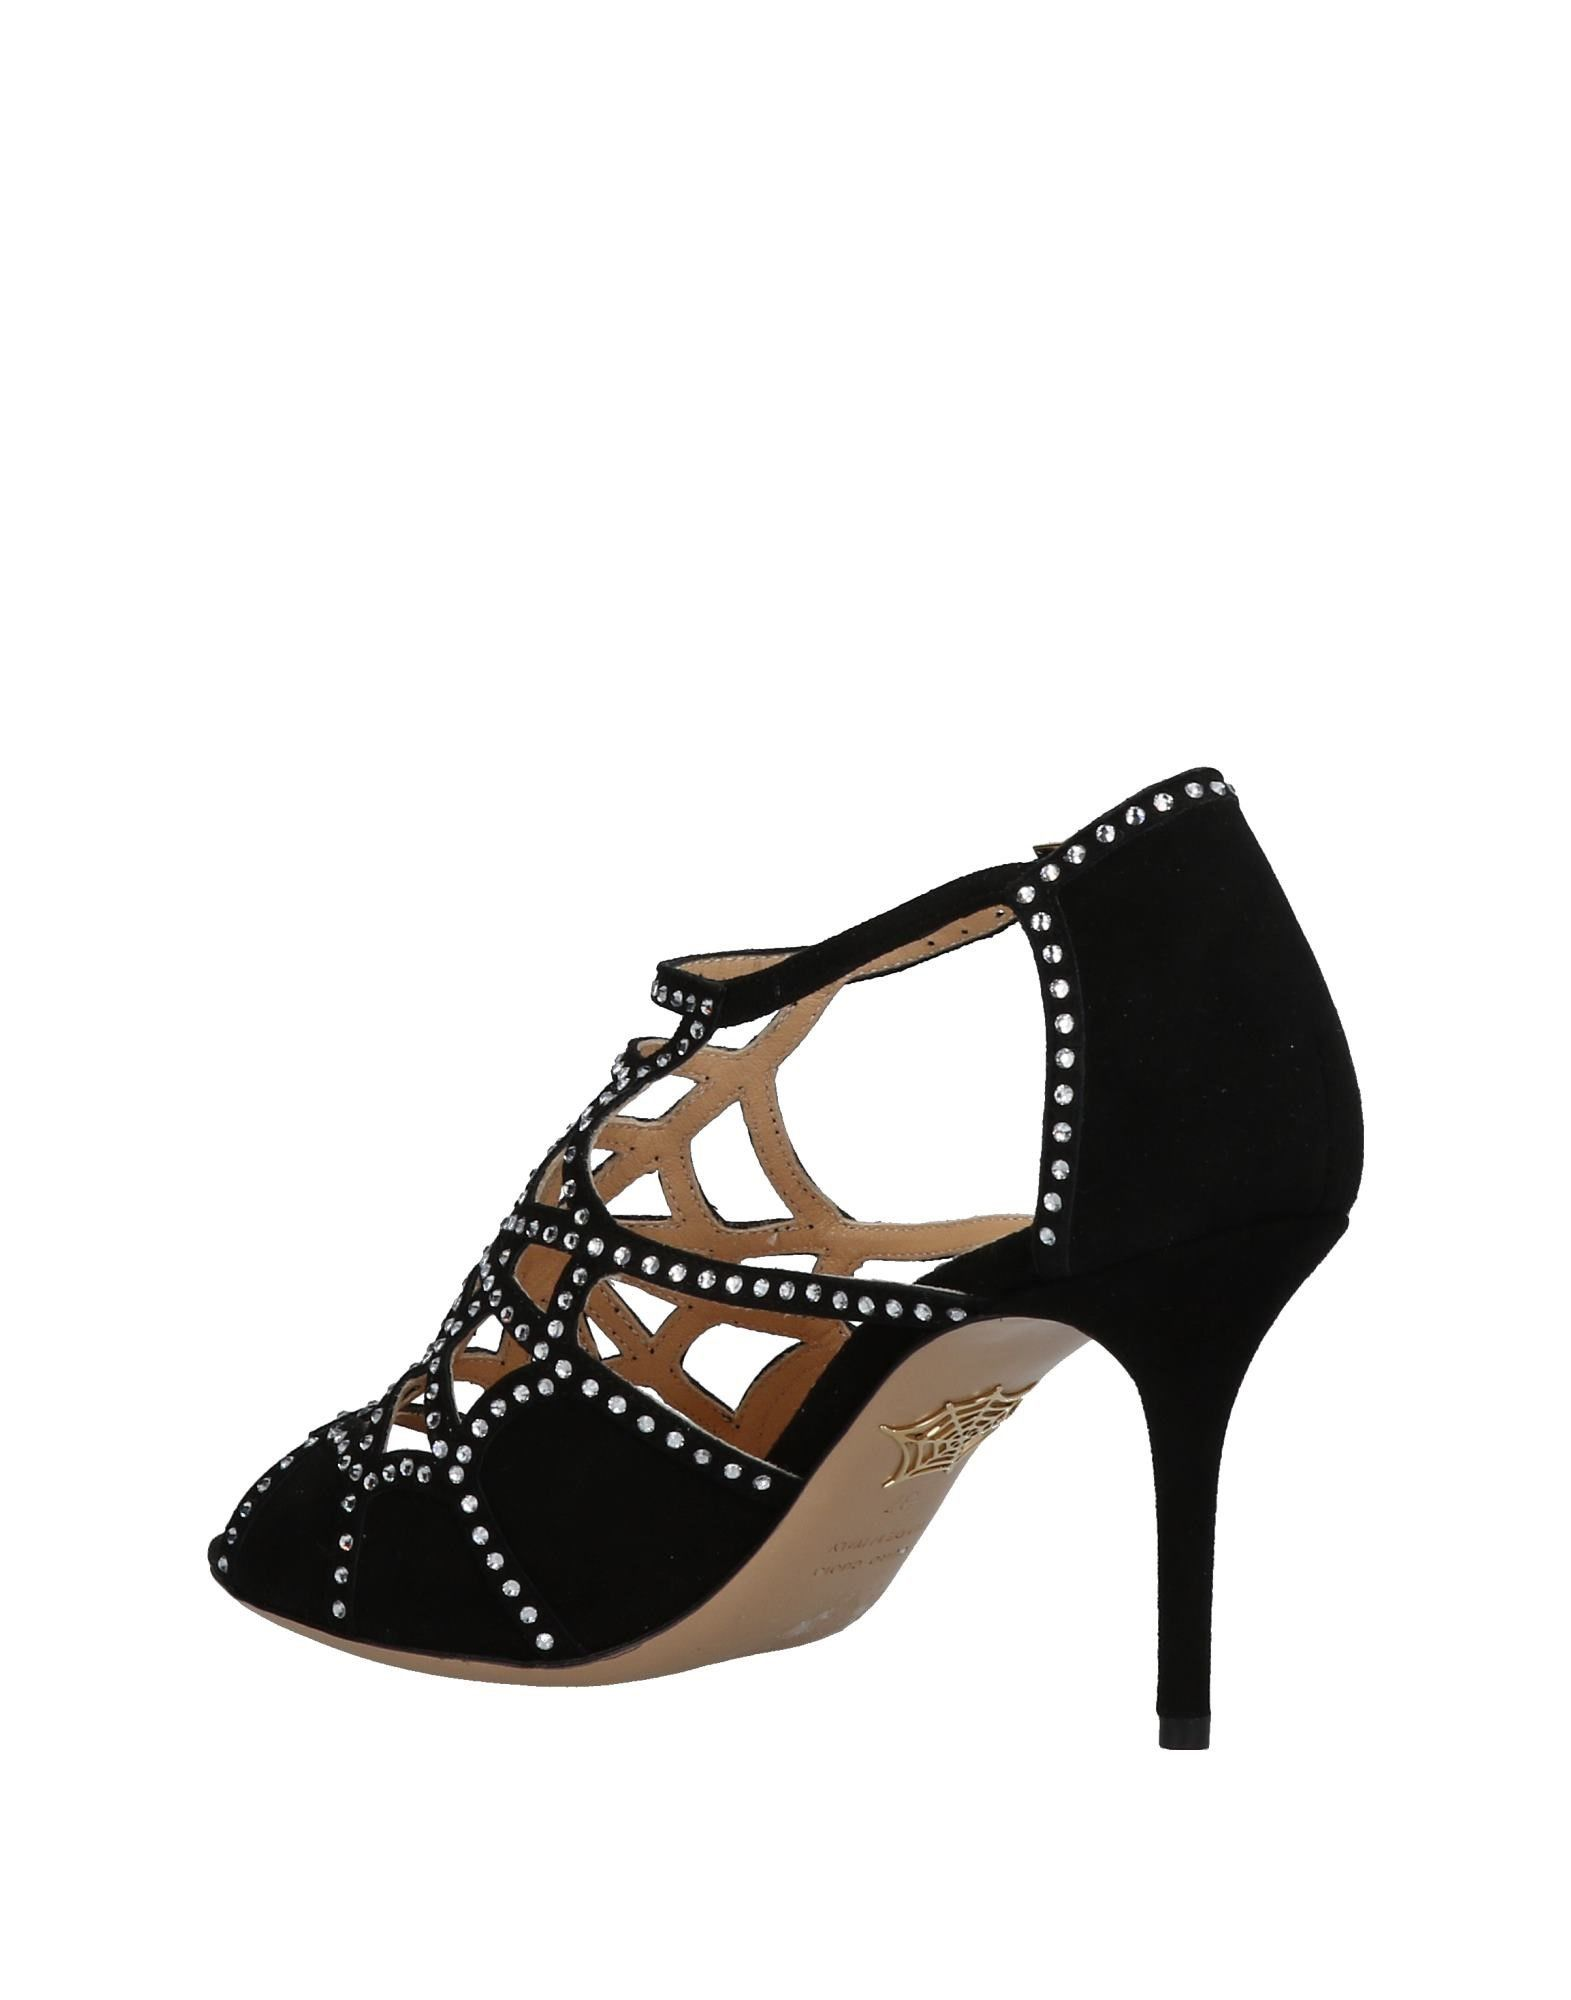 Sandales Charlotte Olympia Femme - Sandales Charlotte Olympia sur